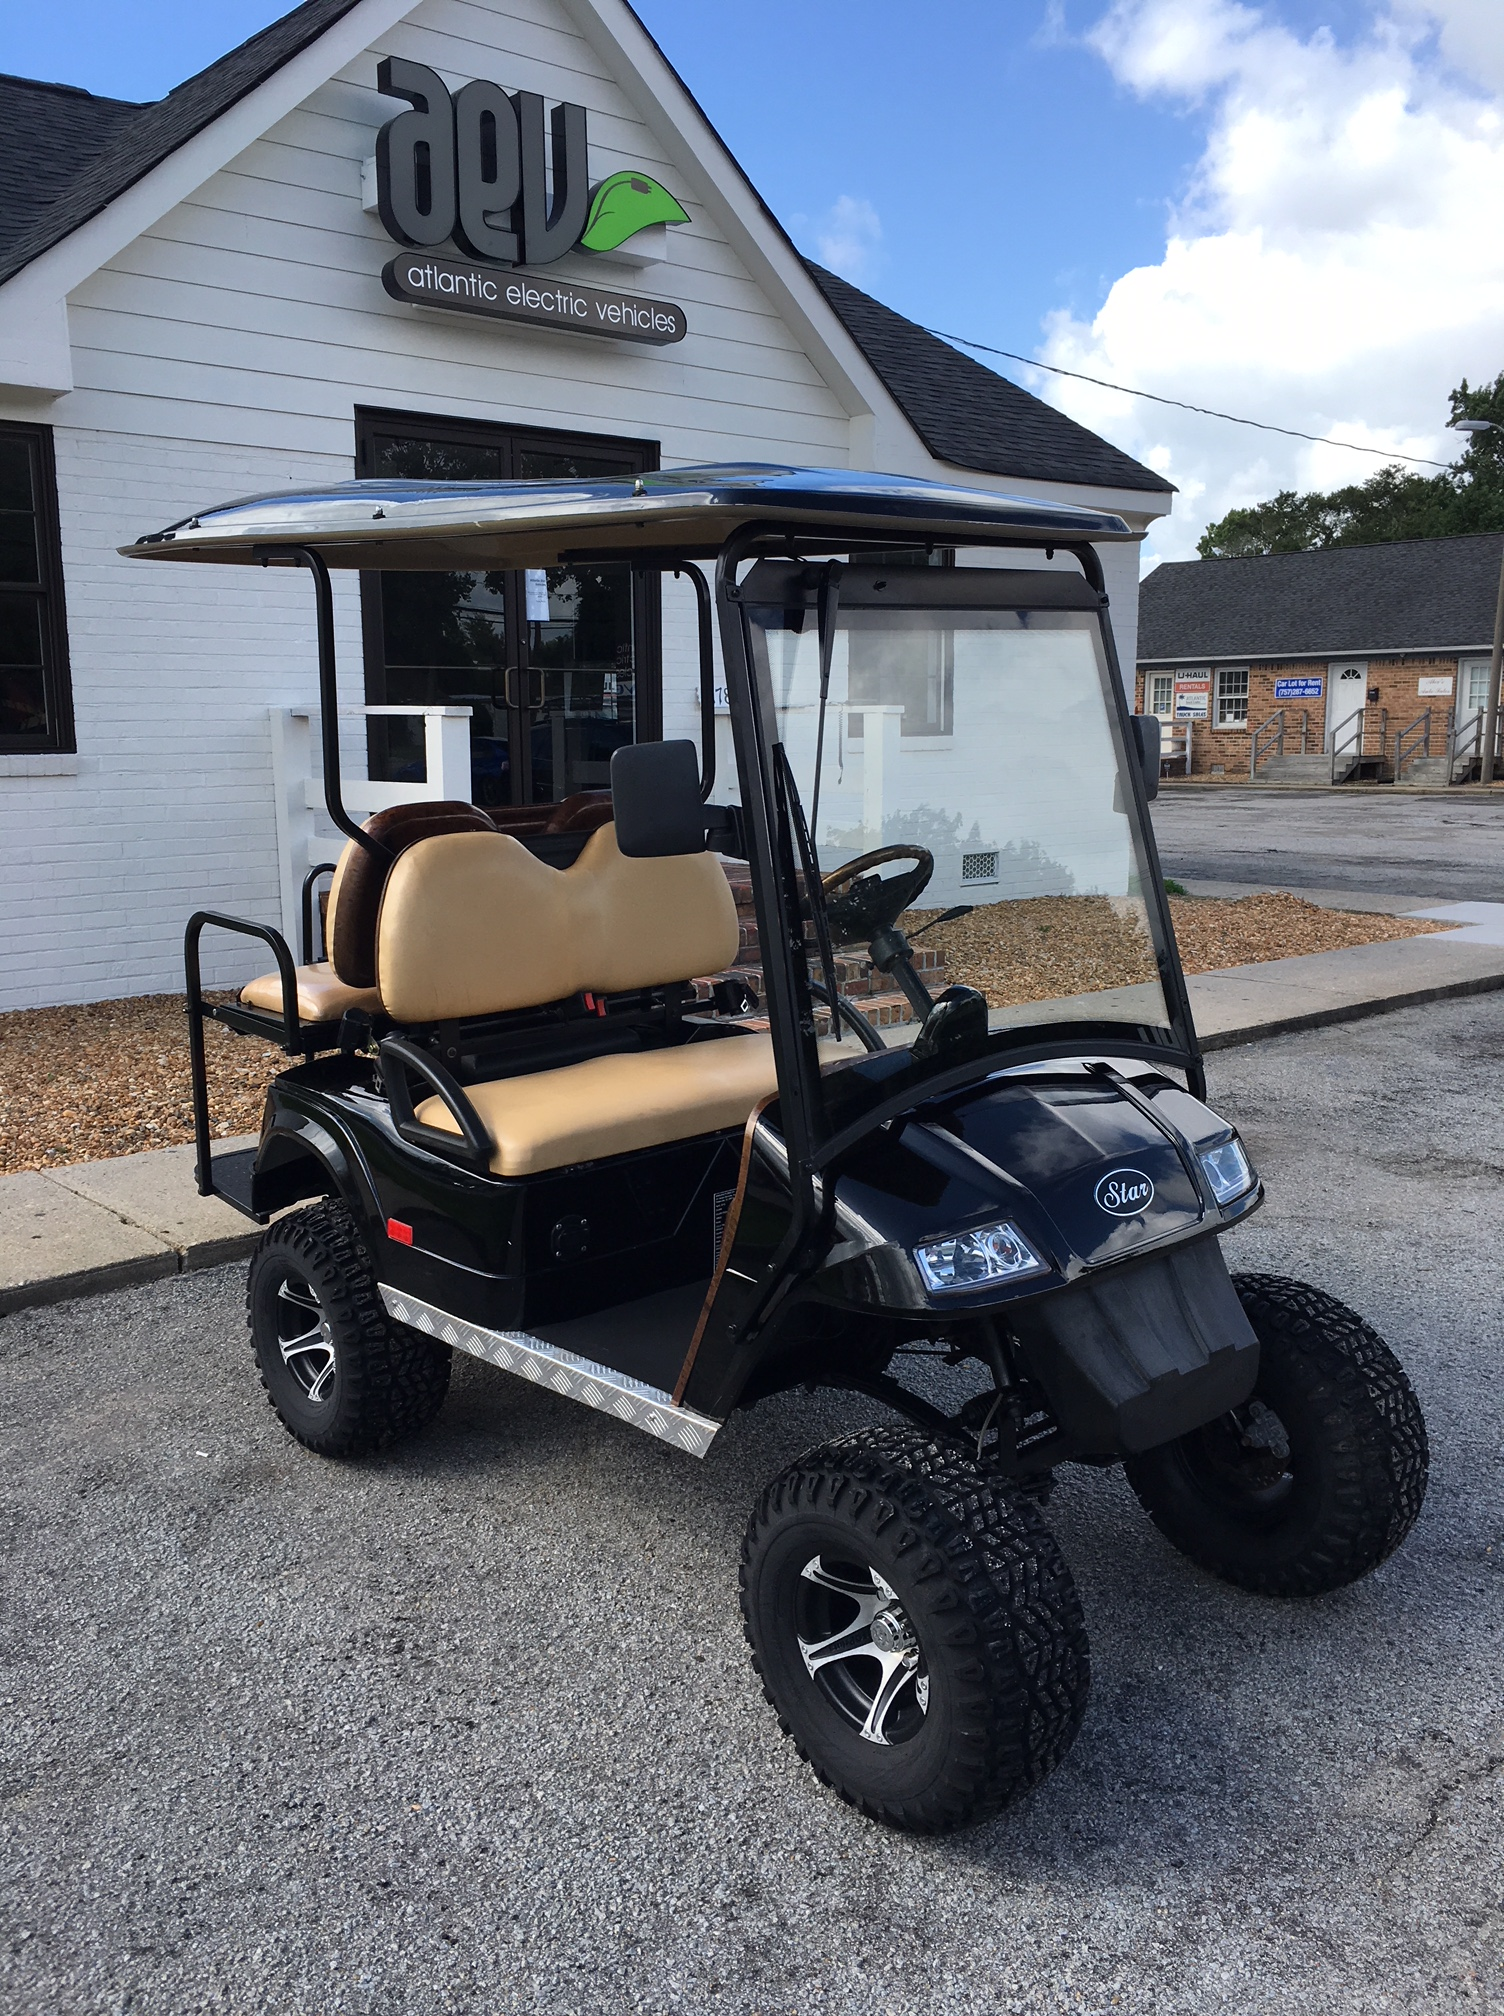 Atlantic Electric Vehicles Golf Carts Virginia Beach Hampton Roads Virginia